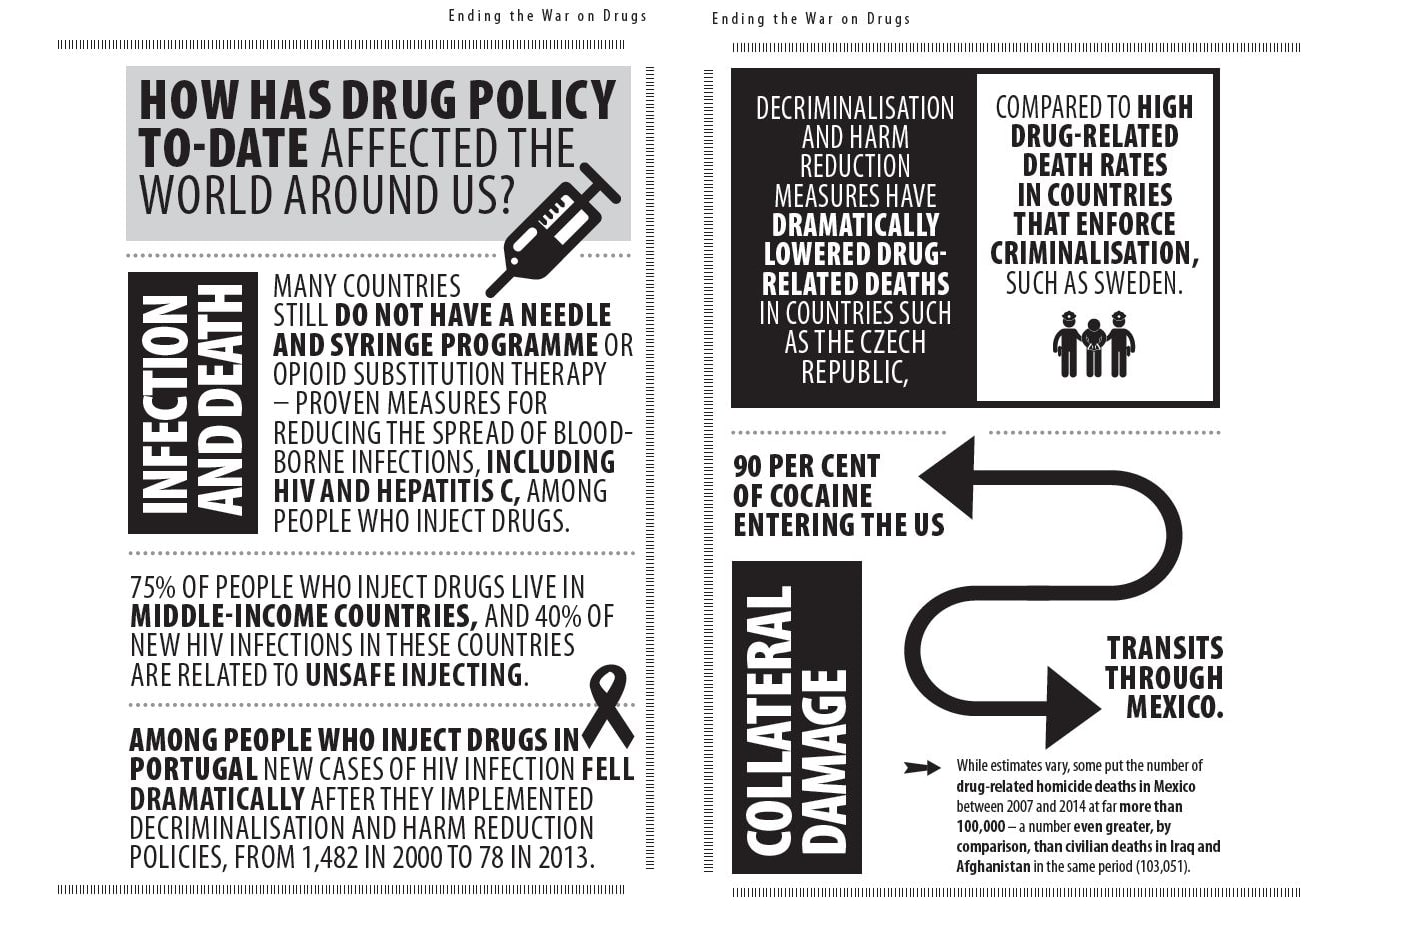 essay about war on drugs The war on drugs is a campaign, led by the us federal government, of drug prohibition, military aid, and military intervention, with the stated aim being to reduce the illegal drug trade in the united states.